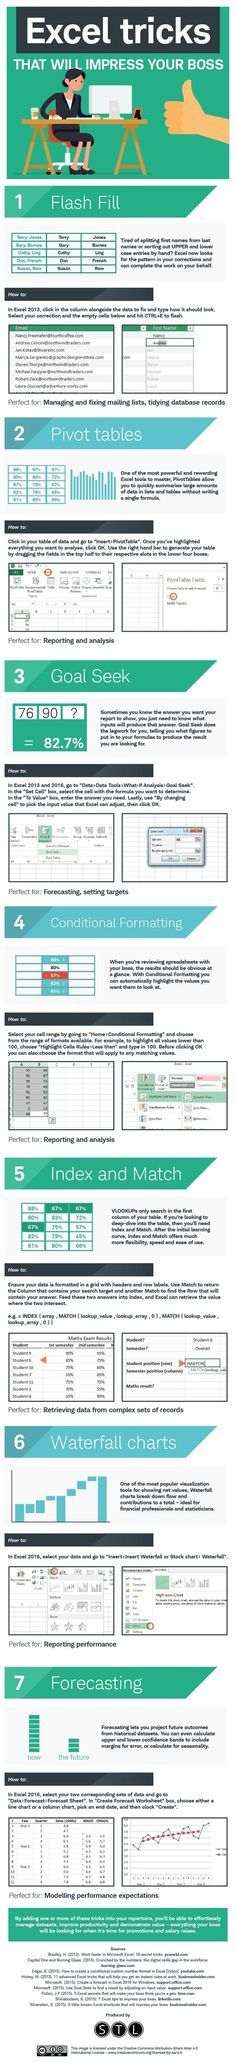 30 best XL images on Pinterest Microsoft excel, Cheat sheets and